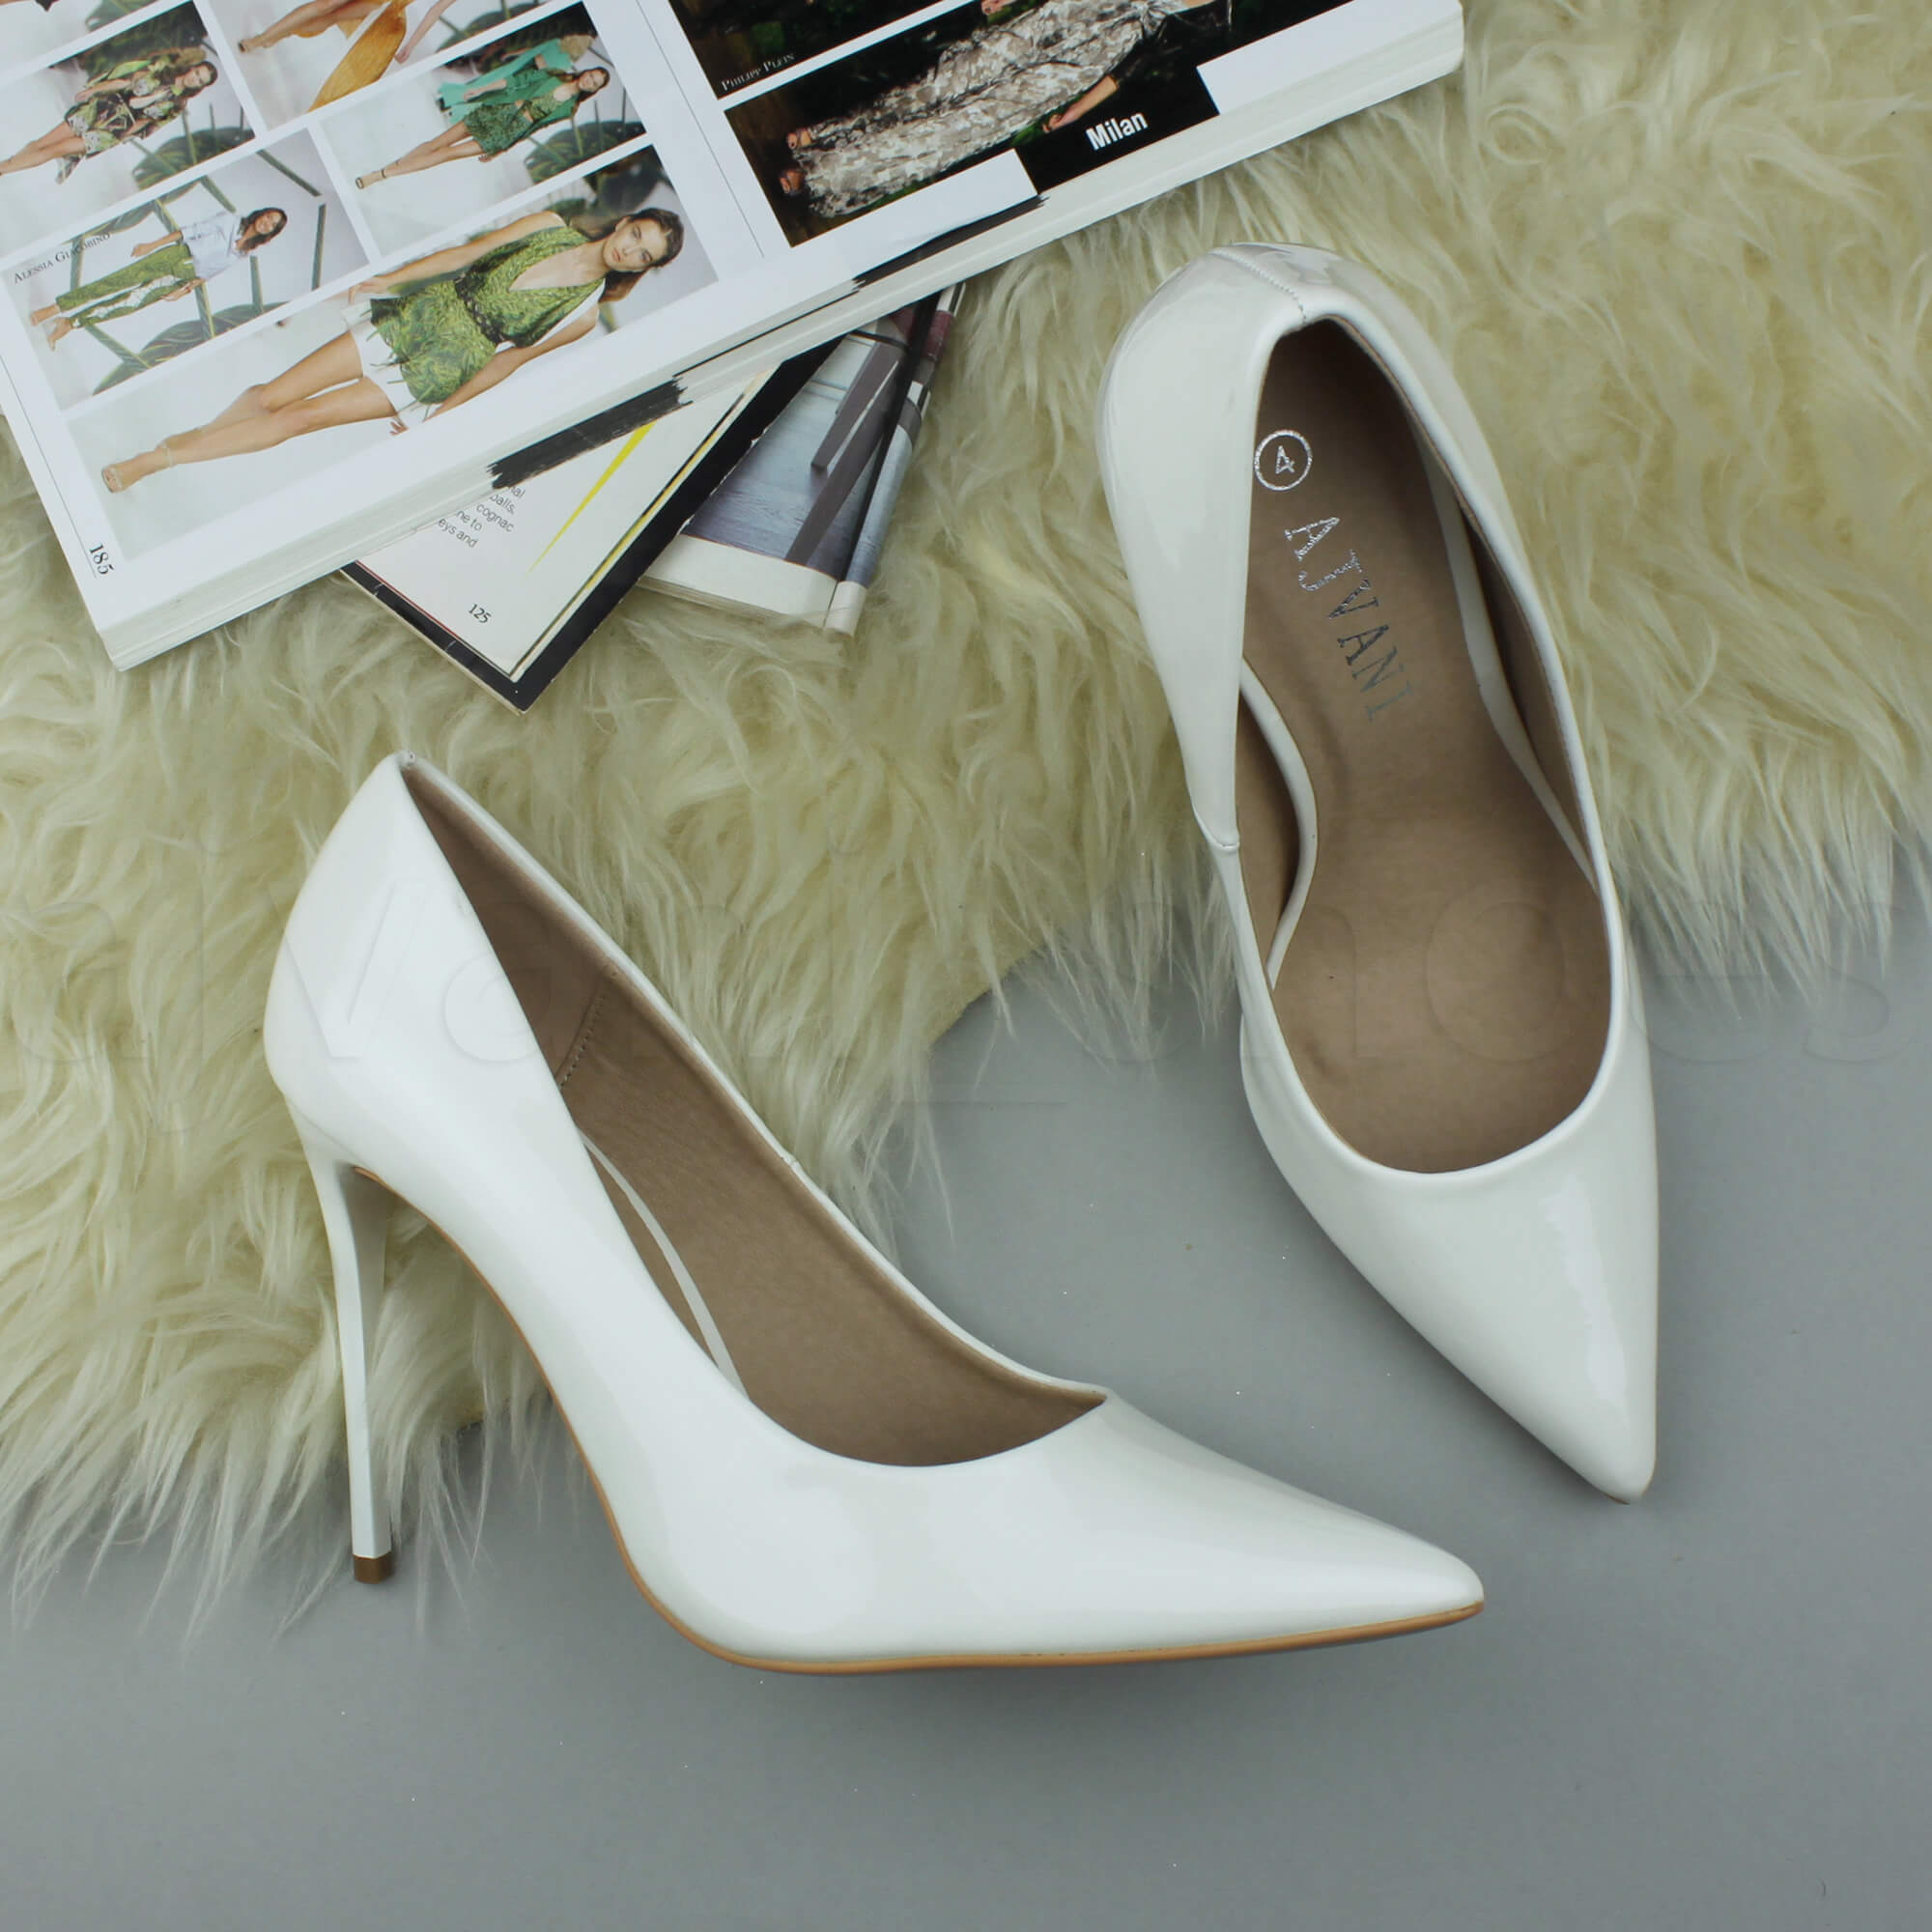 WOMENS-LADIES-HIGH-HEEL-POINTED-CONTRAST-COURT-SMART-PARTY-WORK-SHOES-PUMPS-SIZE thumbnail 250